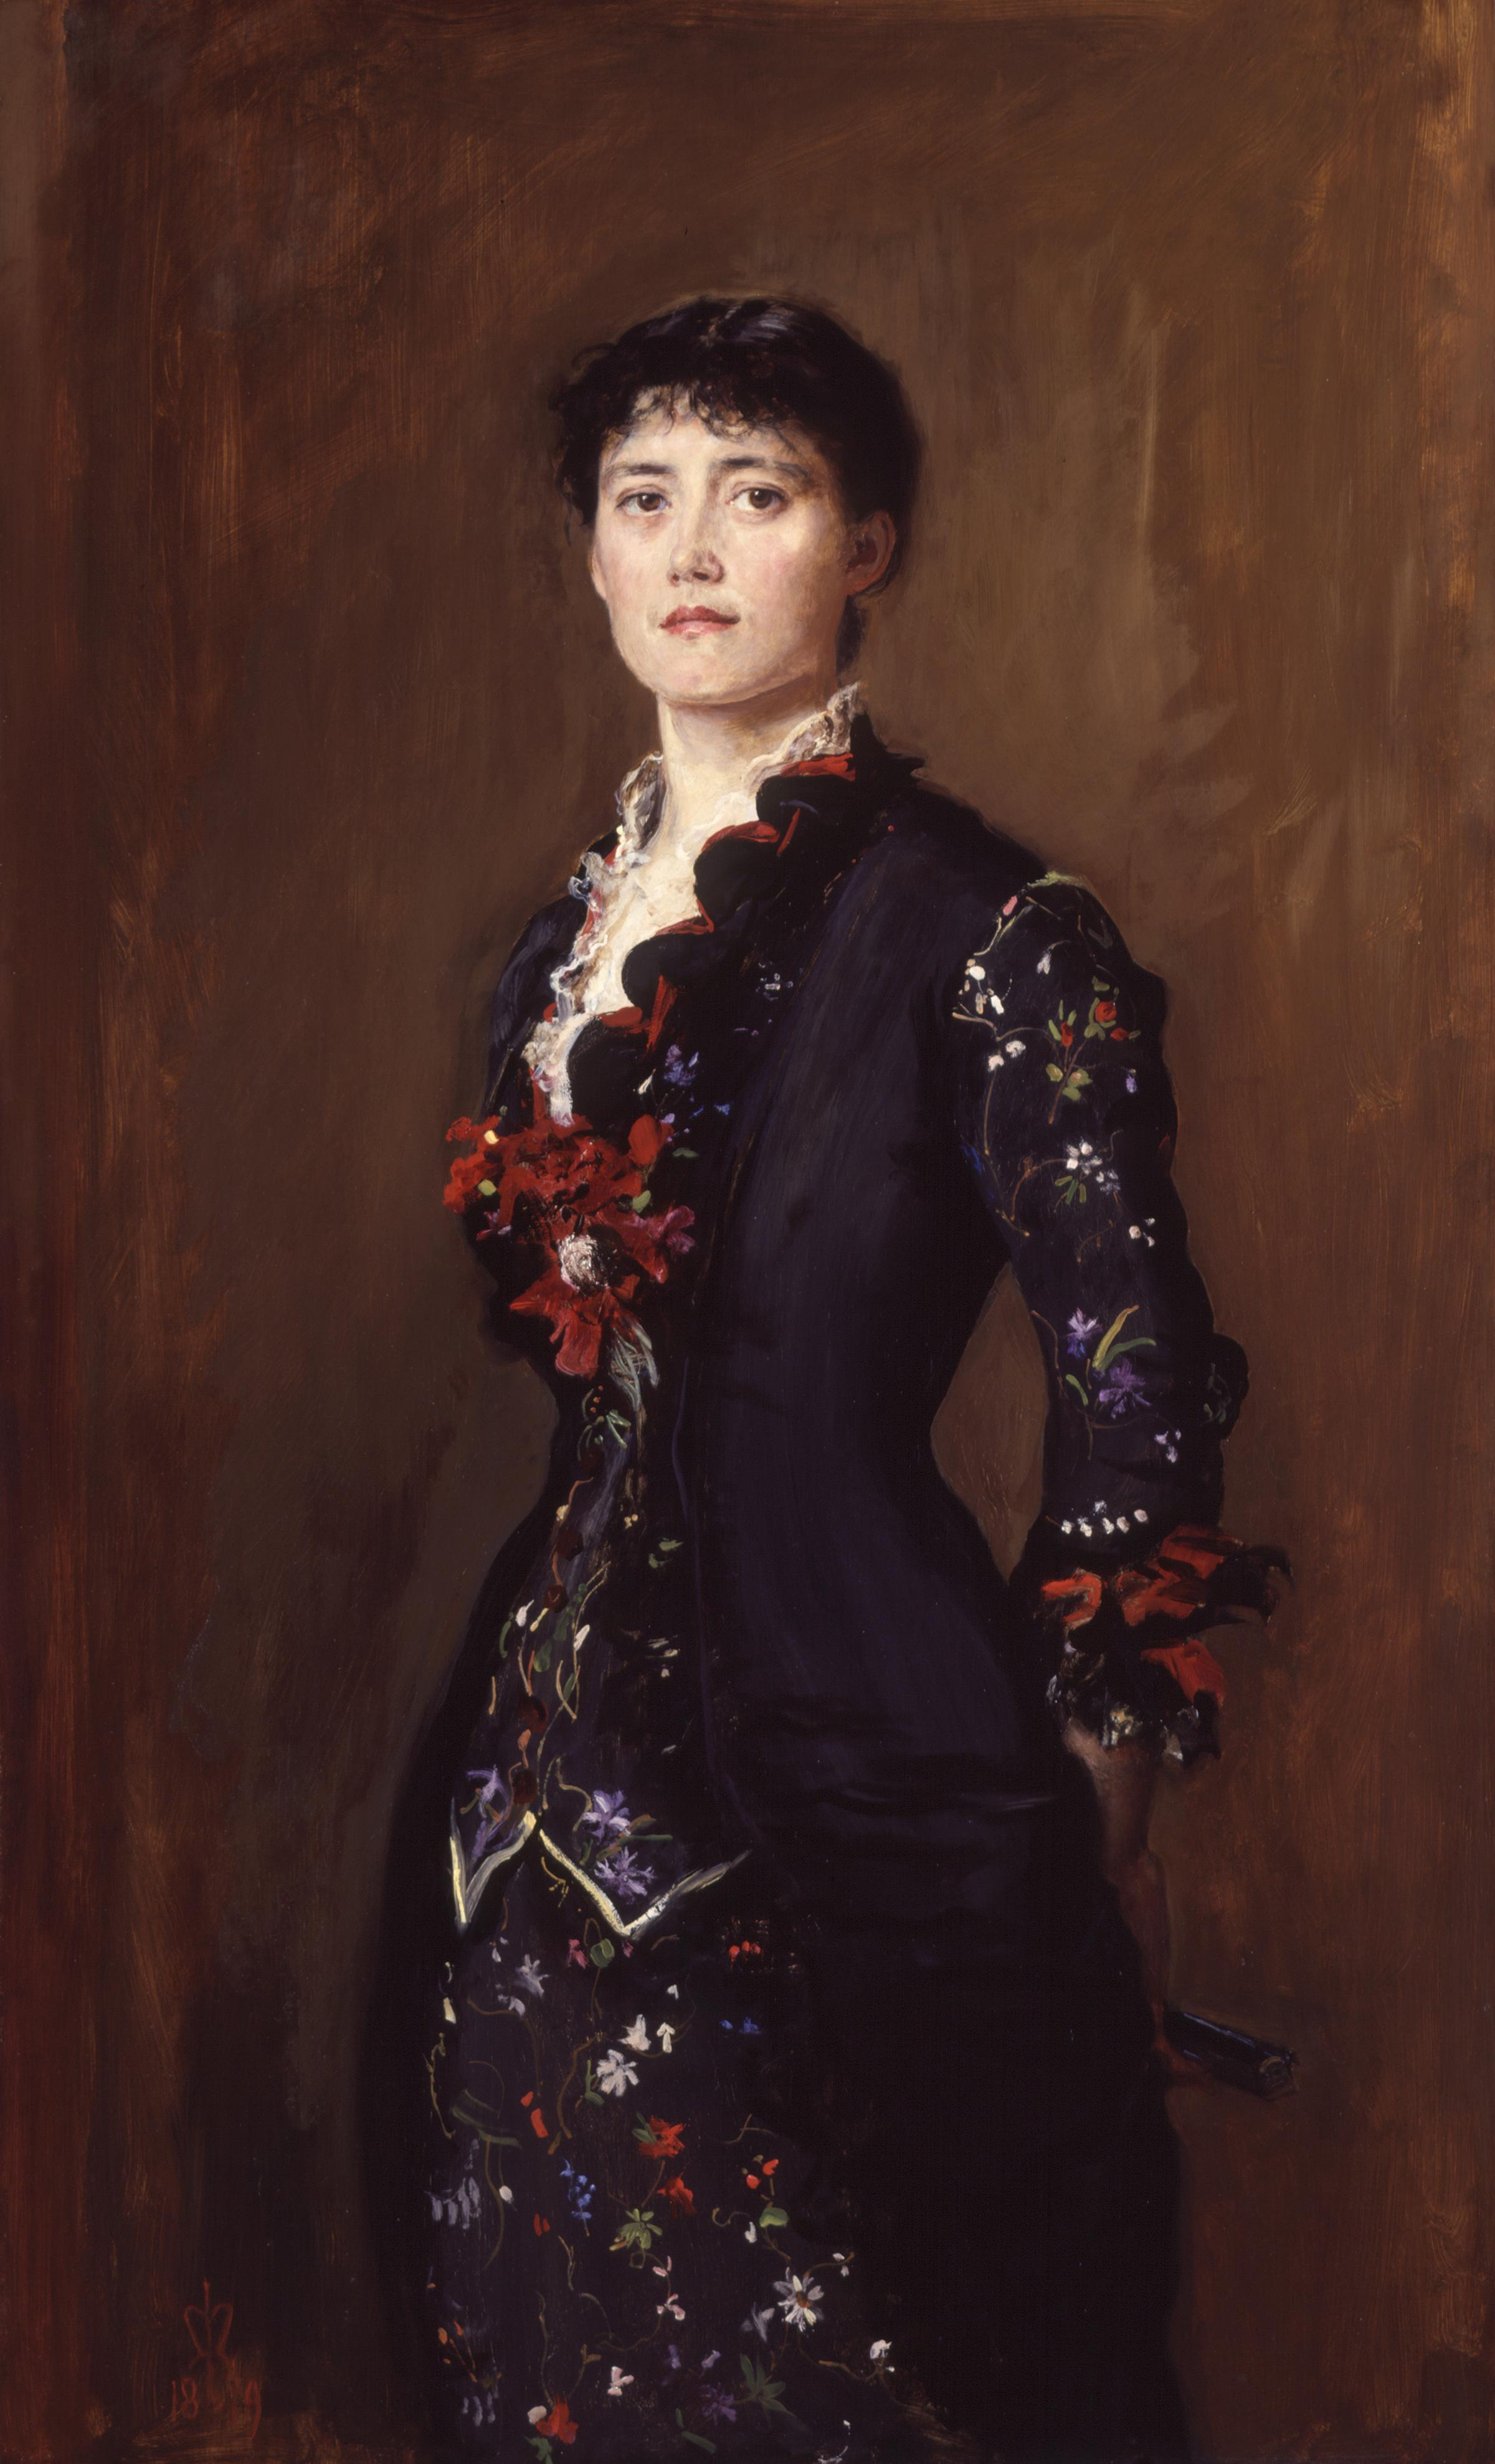 Louise Jane Jopling (née Goode, later Rowe), by Sir John Everett Millais. National Portrait Gallery, London: NPG 6612. Wikimedia Commons